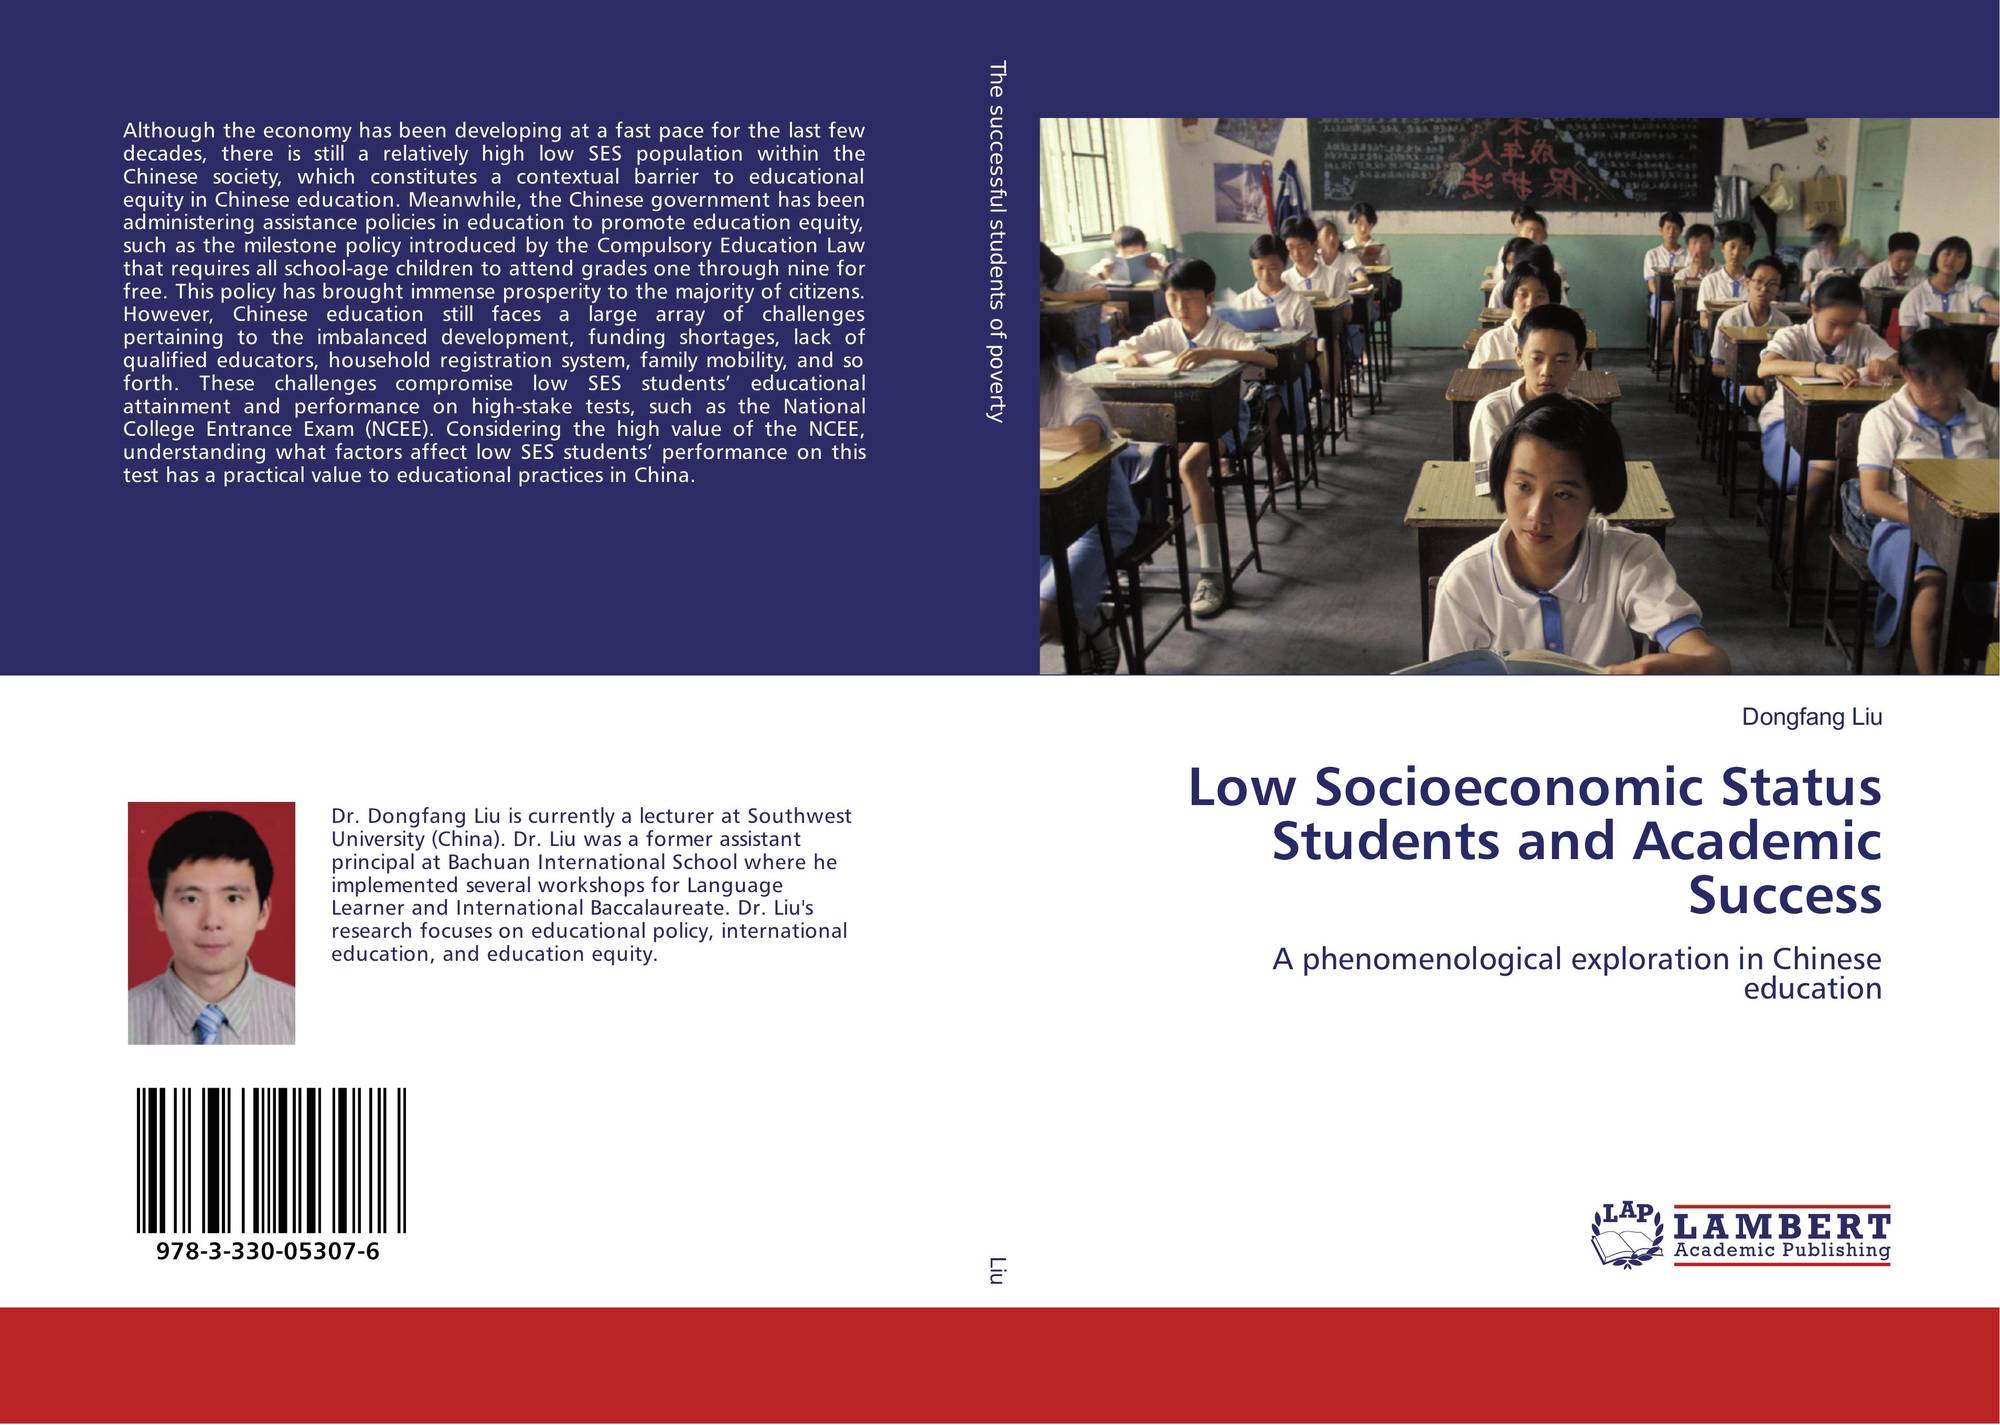 education socioeconomic status and social dilemmas three Socioeconomic status (ses) encompasses not just income but also educational attainment, financial security, and subjective perceptions of social status and social class socioeconomic status can encompass quality of life attributes as well as the opportunities and privileges afforded to people.